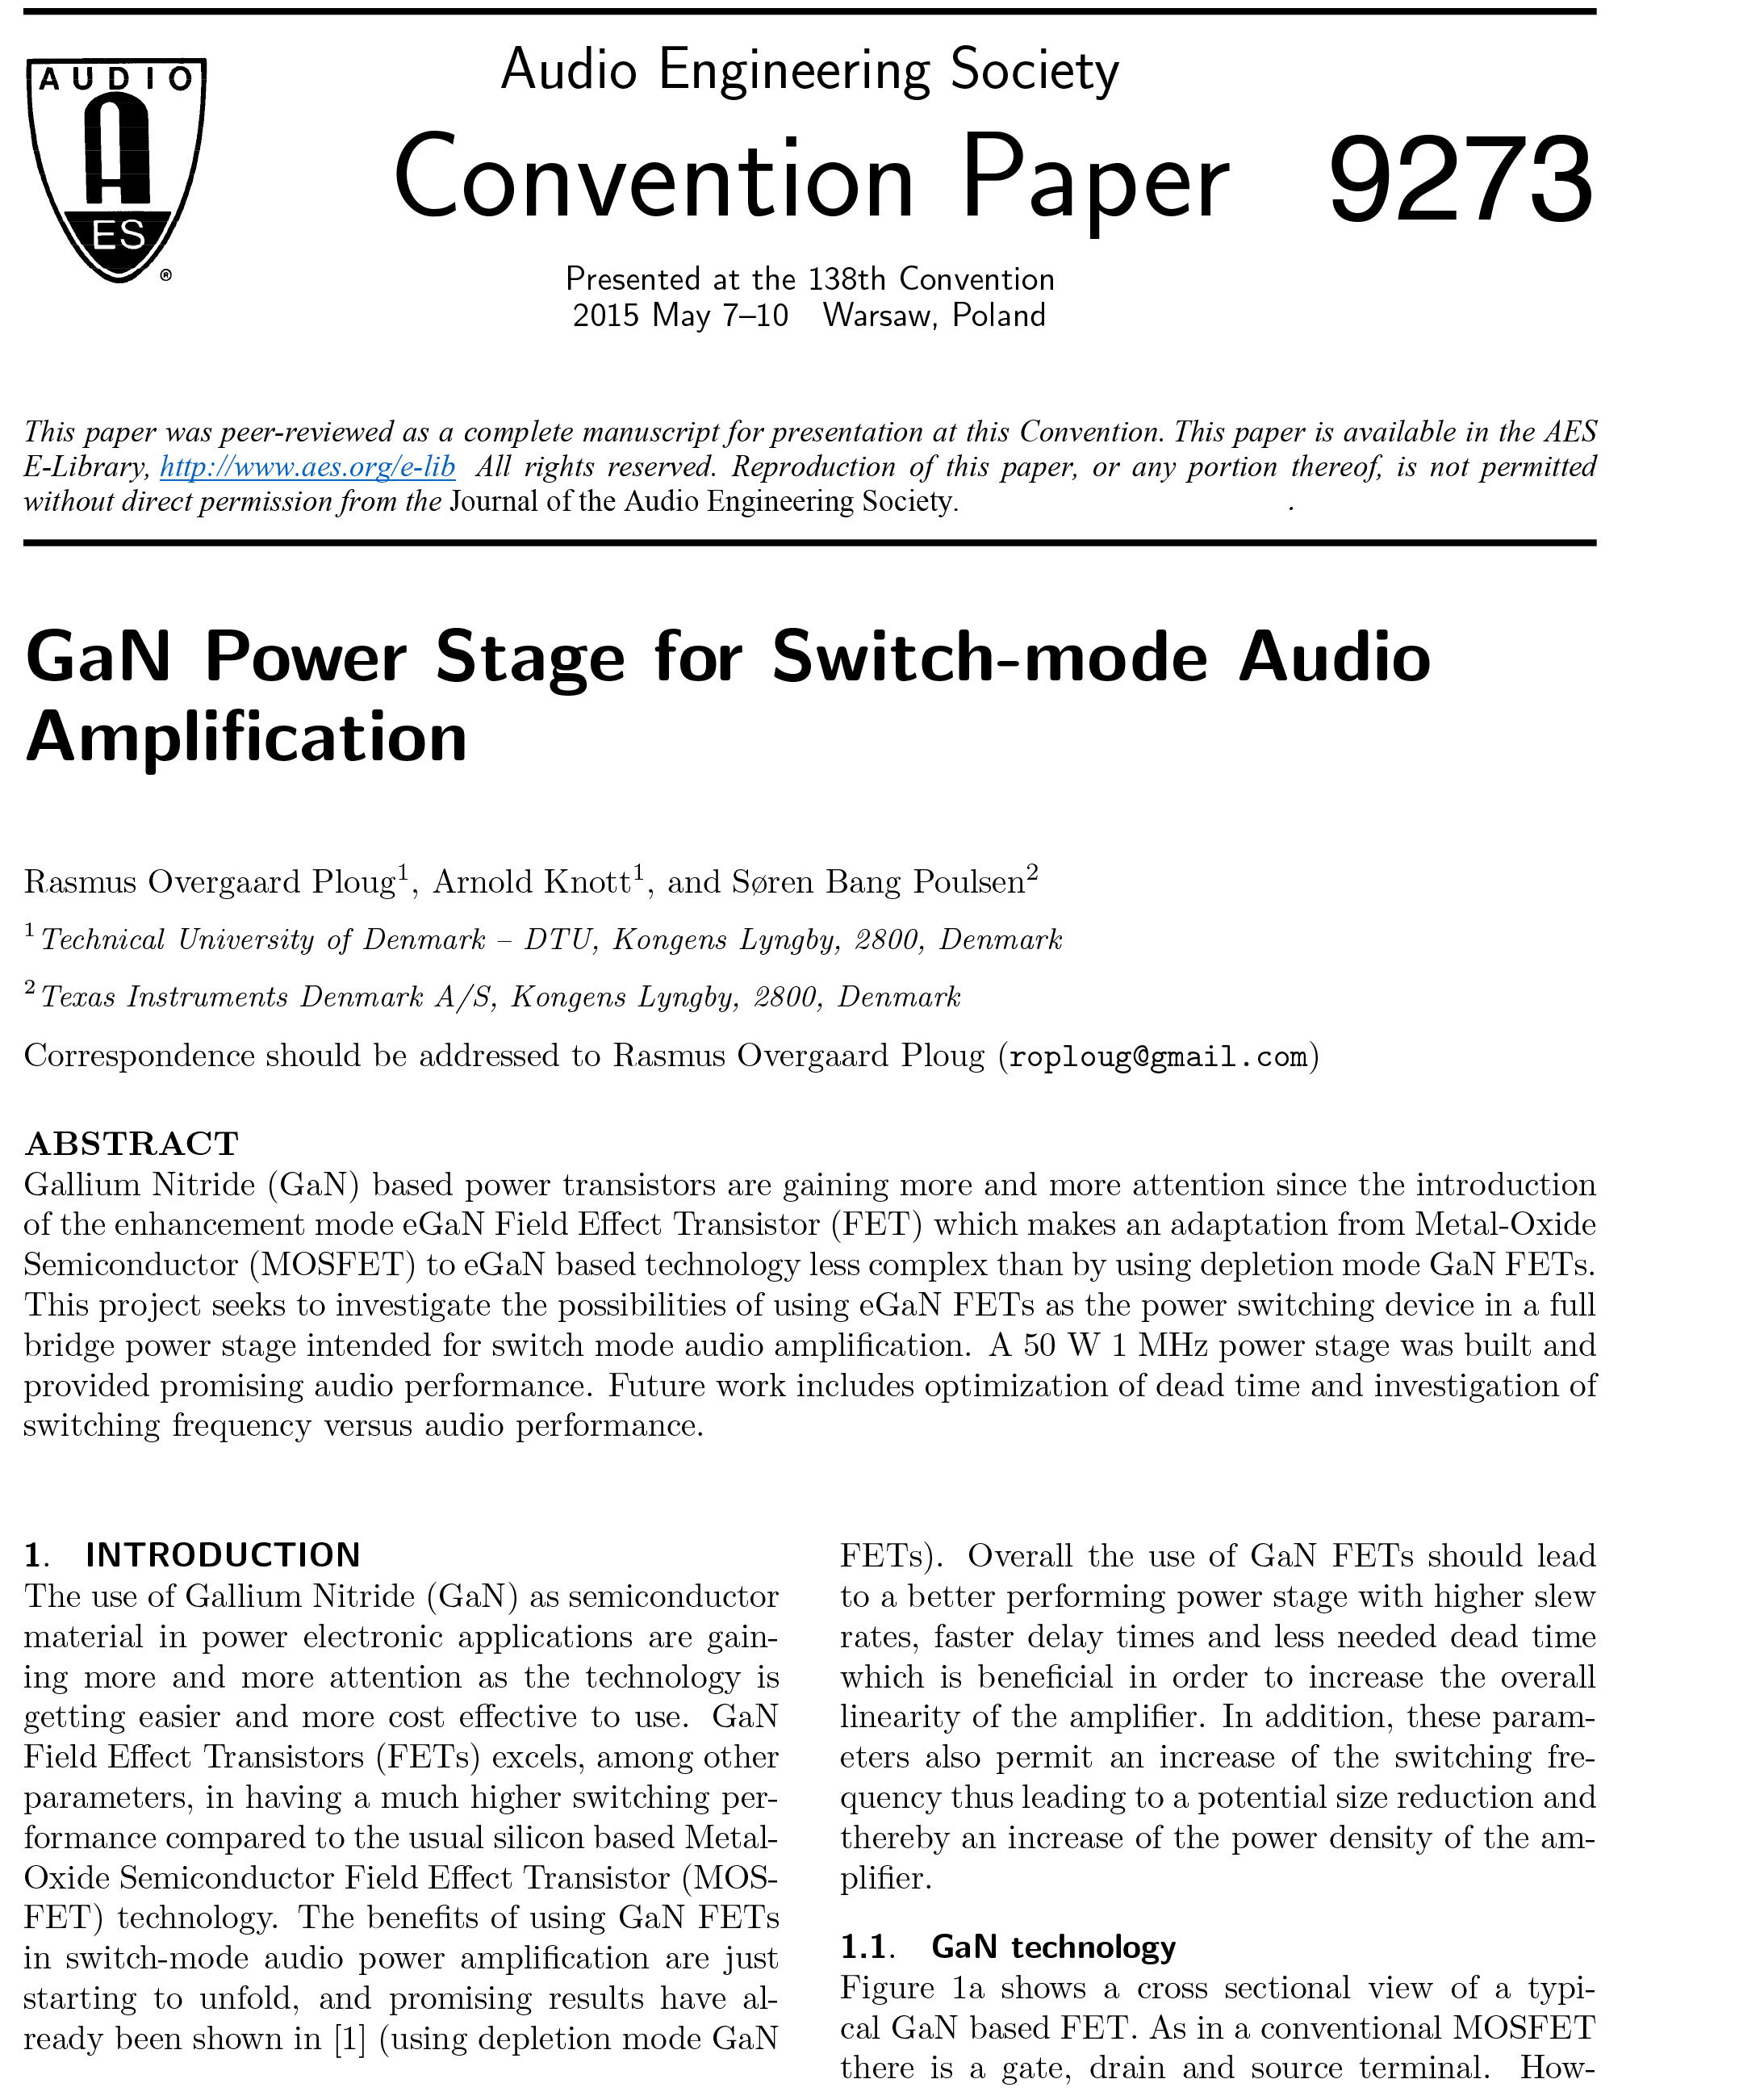 Aes E Library Gan Power Stage For Switch Mode Audio Amplification Of An And Gate All That Needs To Be Added Is Another